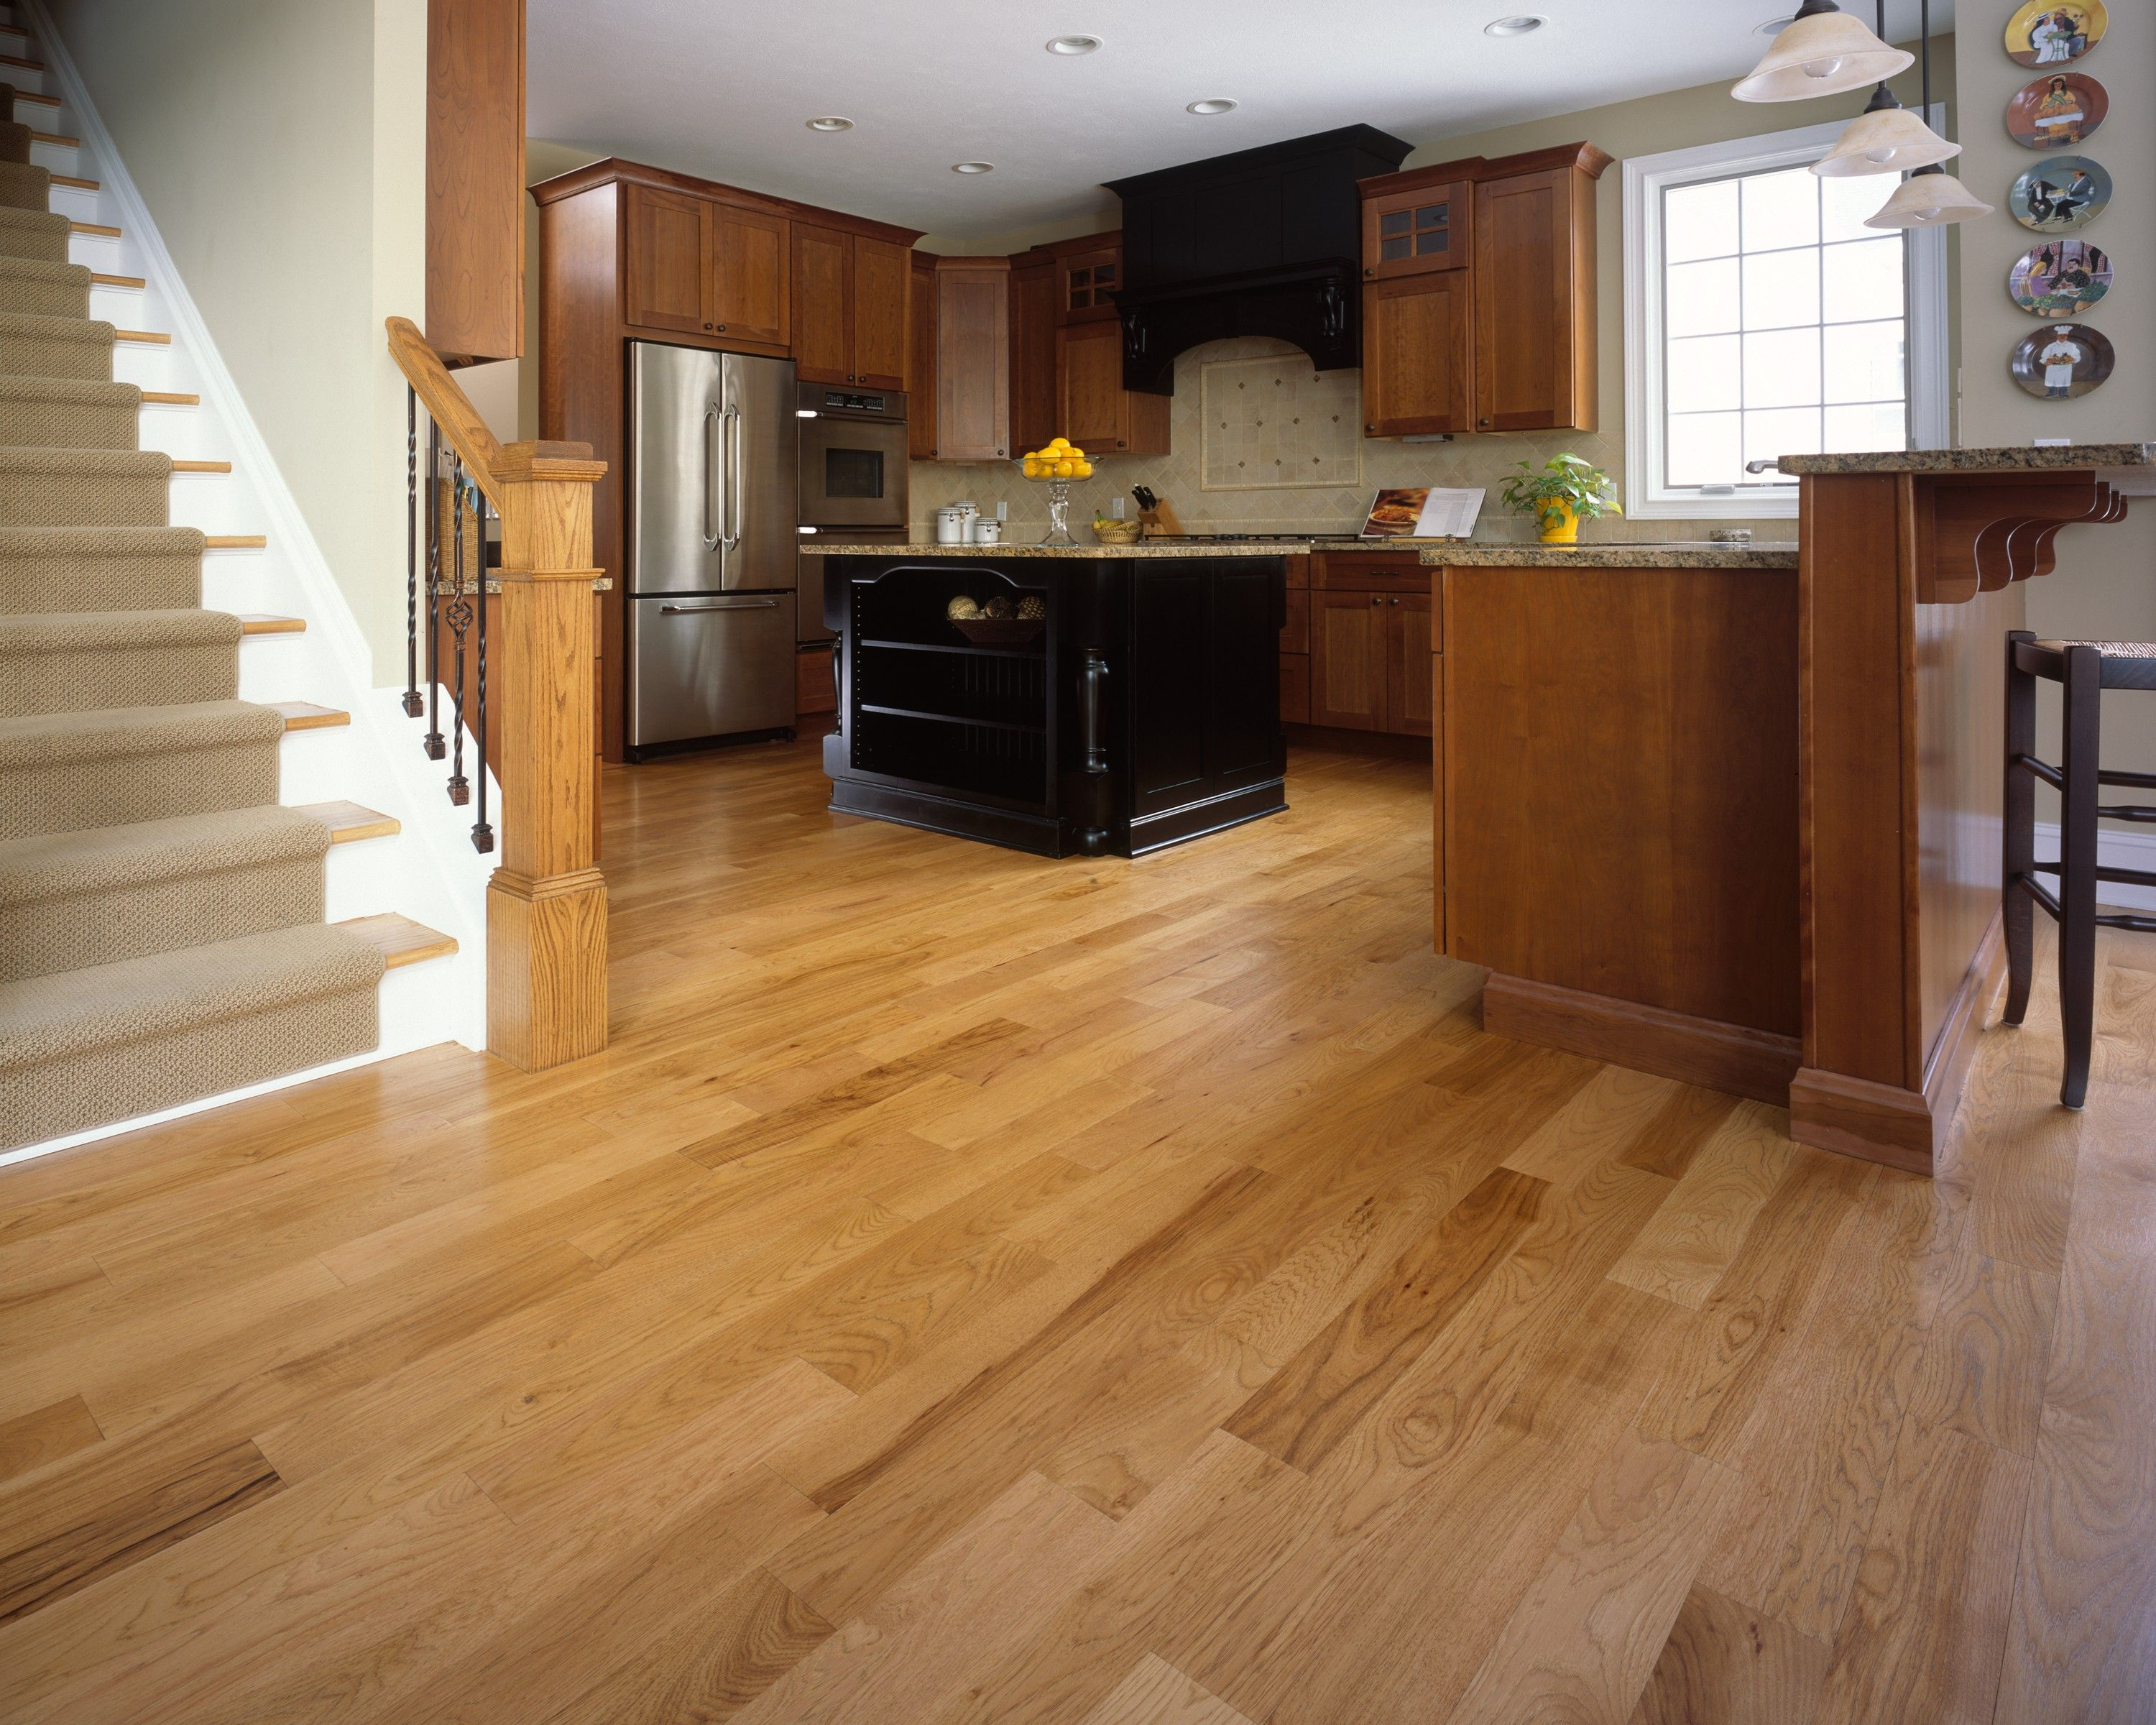 koa floor collection chocolate brazilian pecan exotic mazama hardwood p flooring